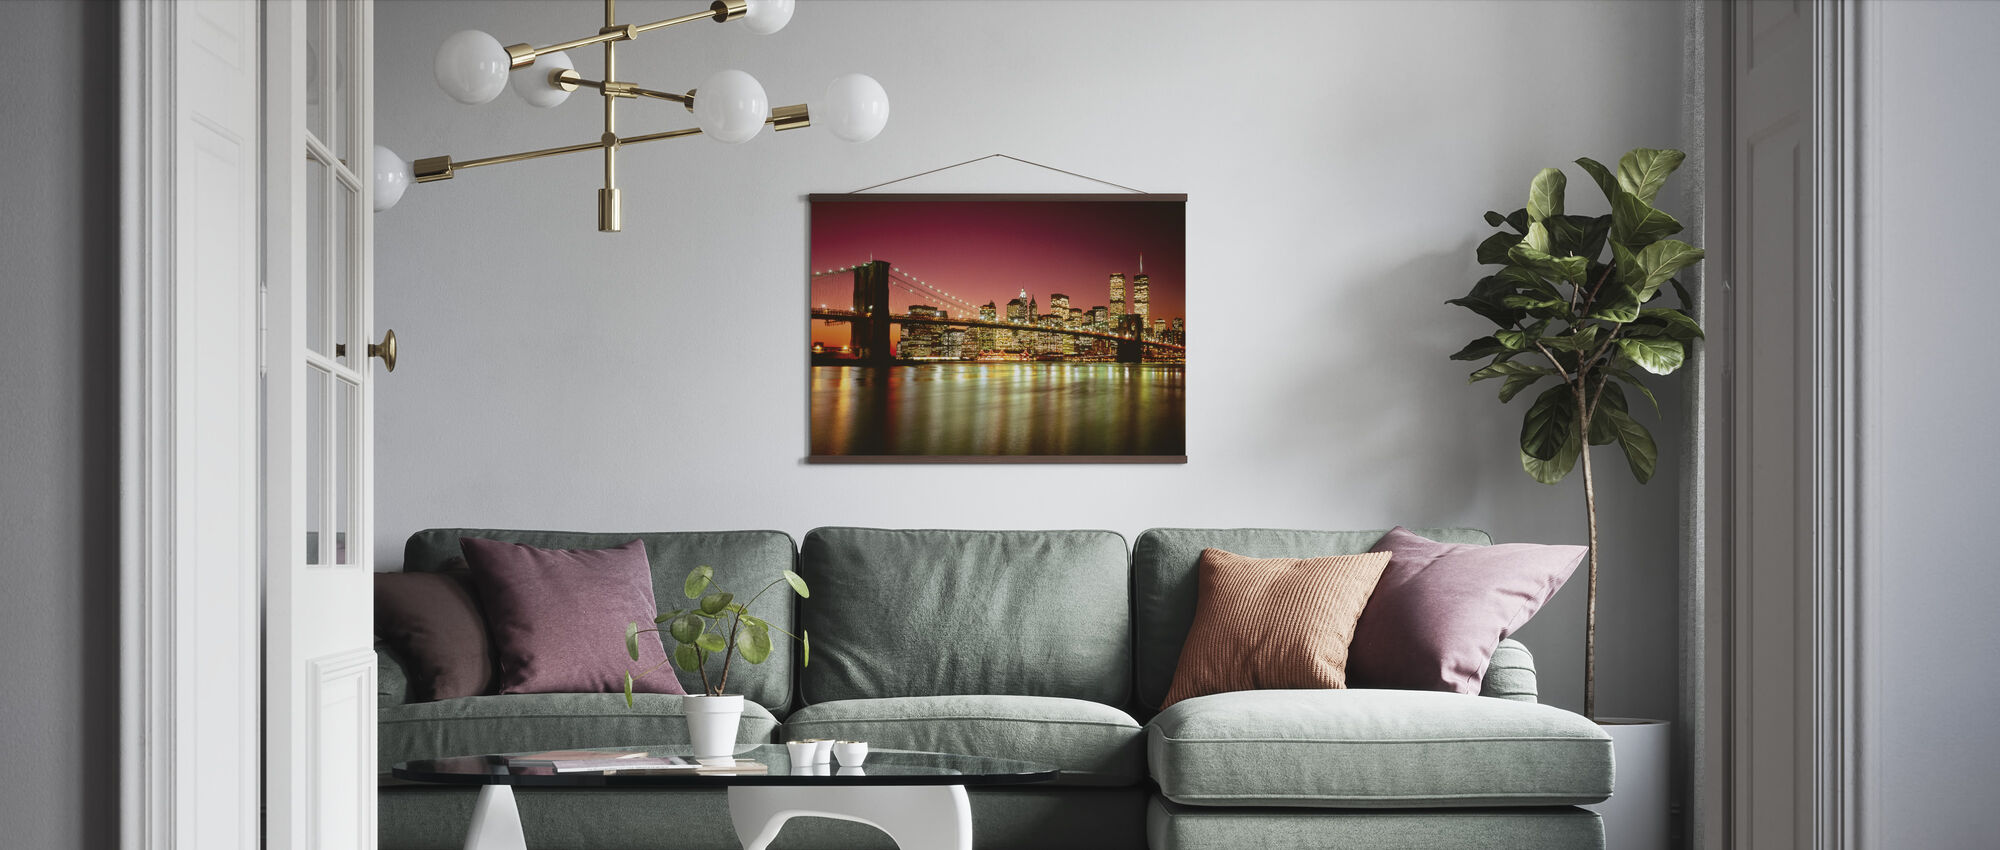 Brooklyn Bridge - Poster - Living Room